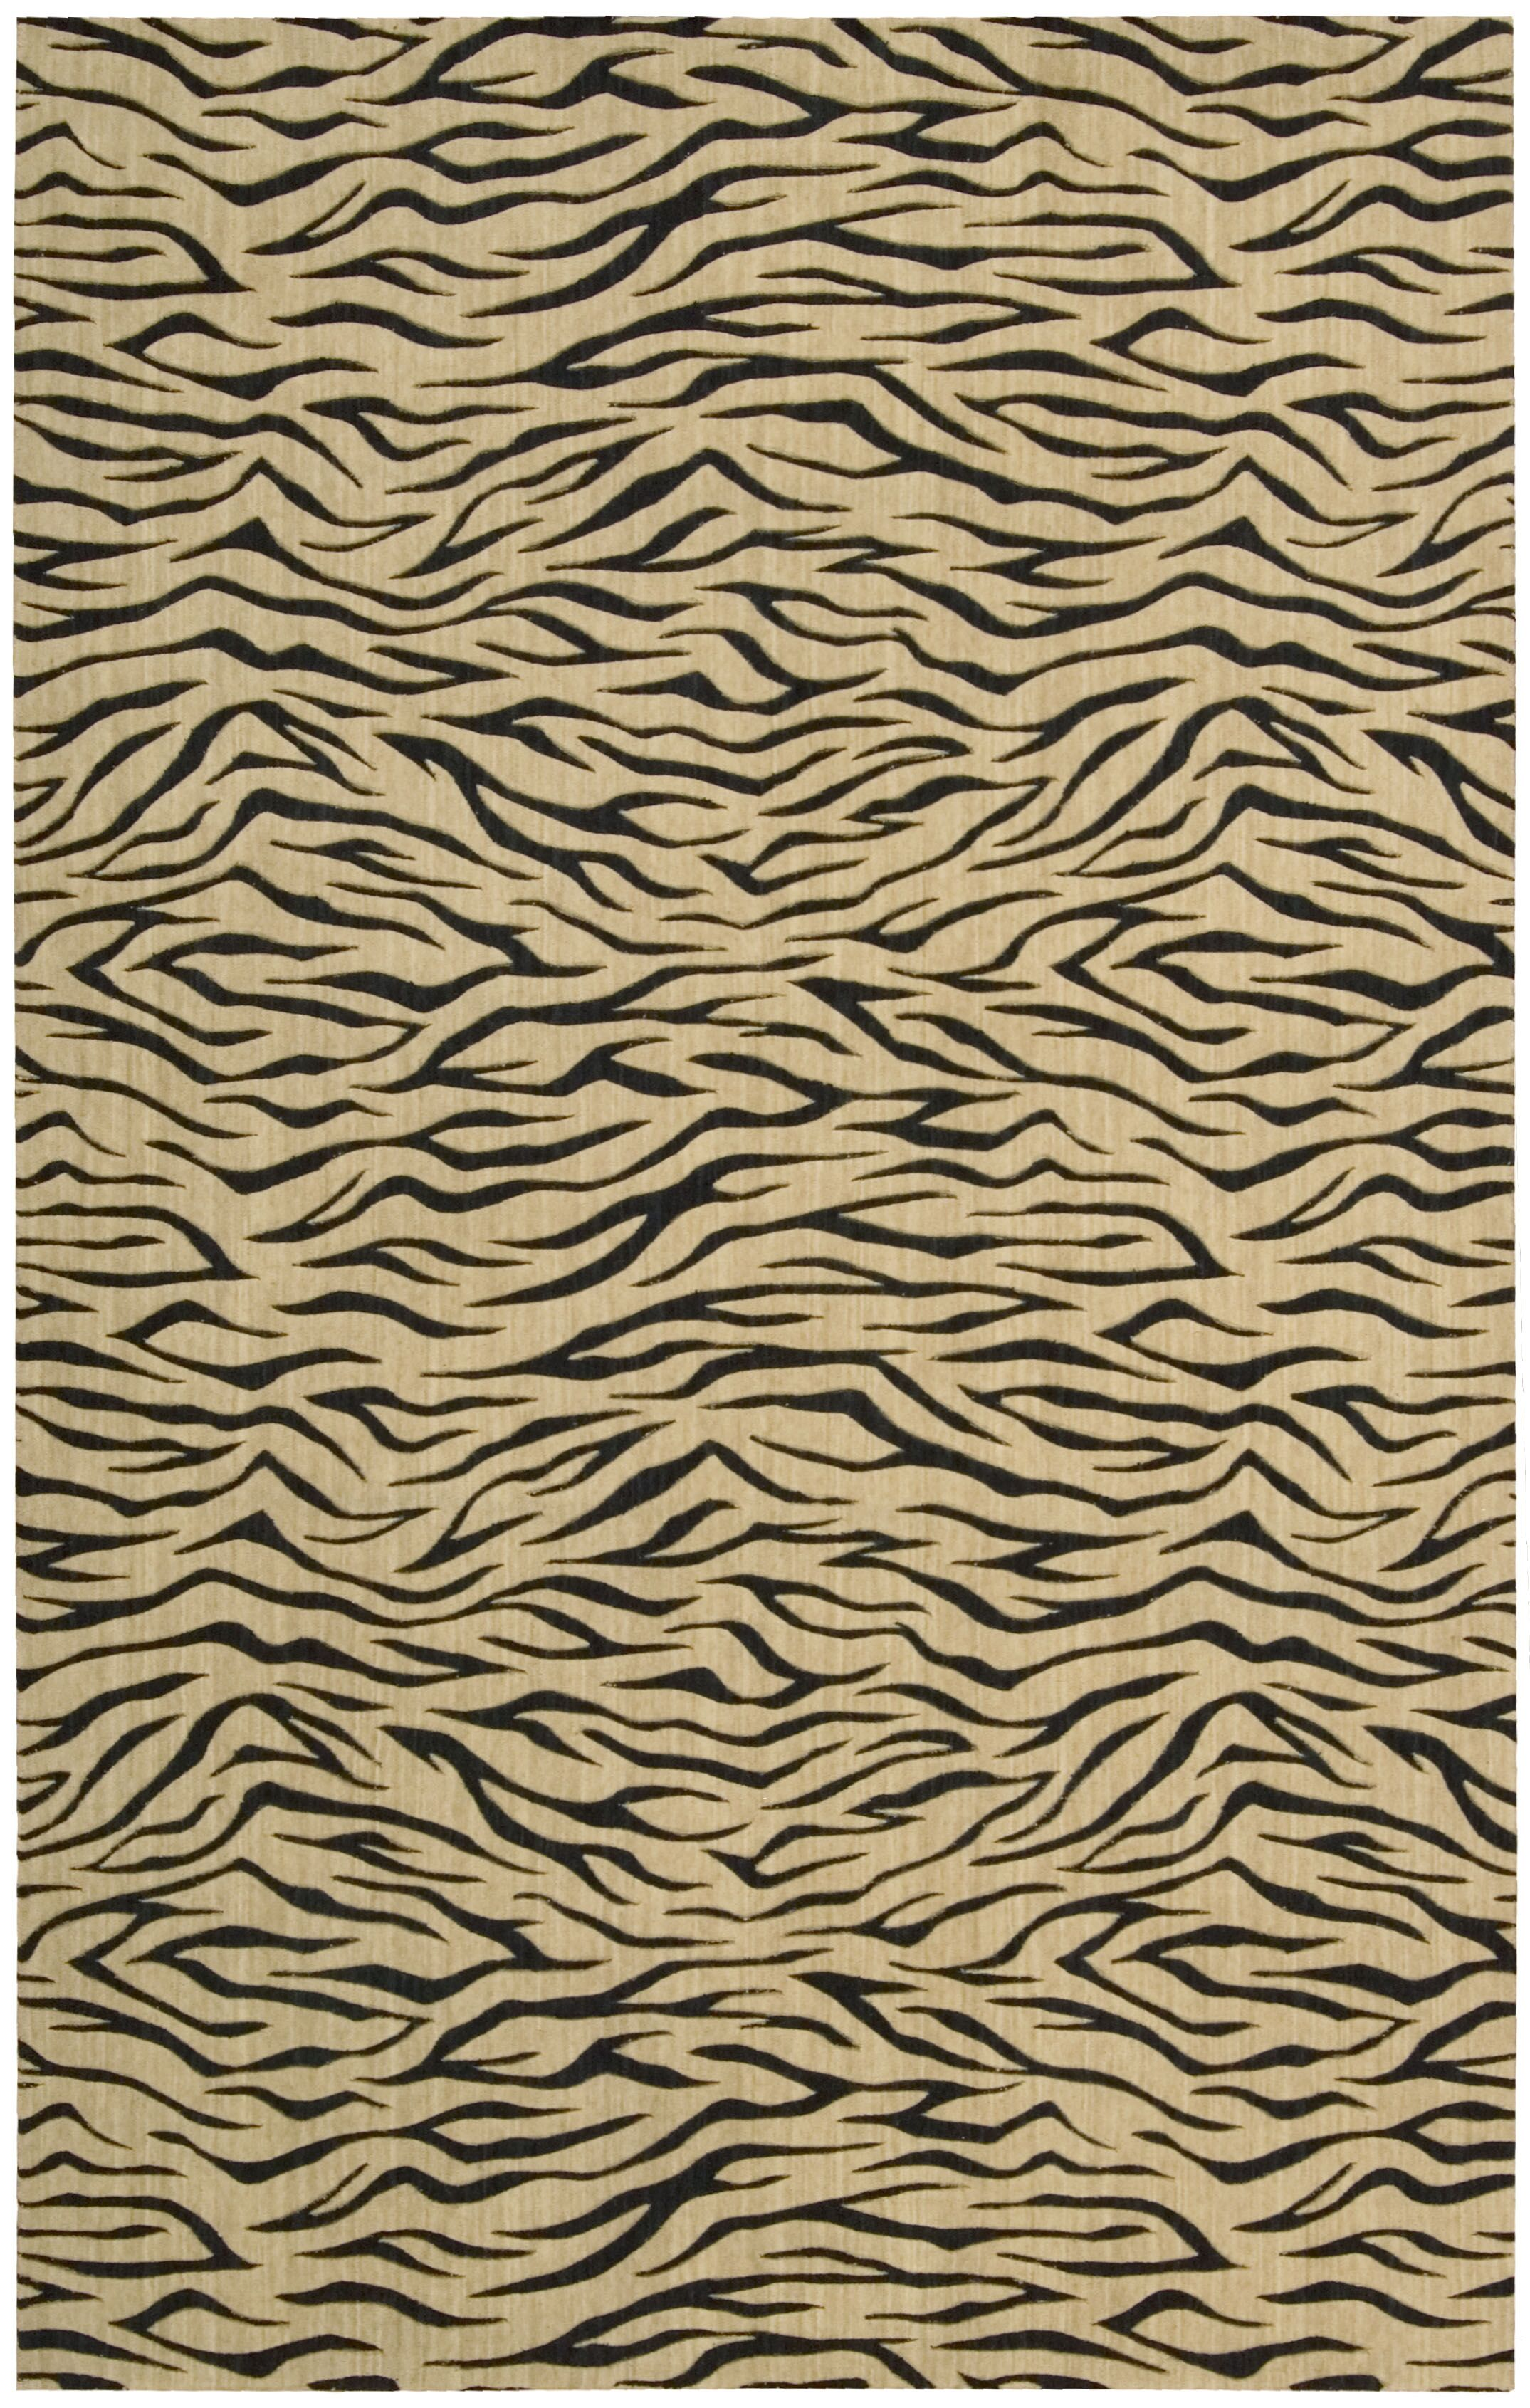 Dunnstown Hand-Woven Wool Beige Area Rug Rug Size: Rectangle 7'6